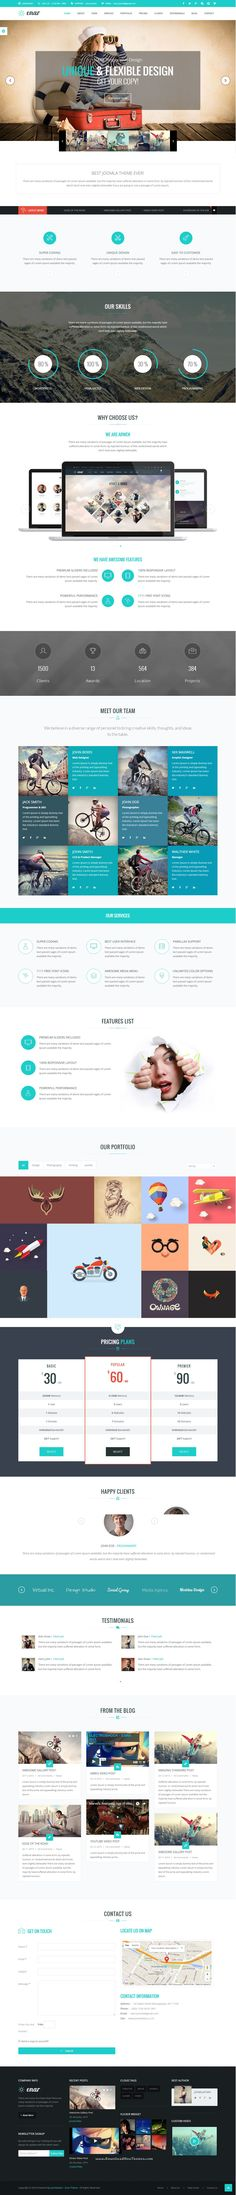 Enar Responsive Multi-Purpose Responsive Joomla Template. We have included 20+ ready-to-use Homepages in quick start, it is this huge, Awesome Design, Unique Concepts, Scalable Responsive, Amazing flexibility, Dark and Light Scheme, Many Features, Premium Plugins, Super Shortcodes. #cmstheme #Joomatemplate